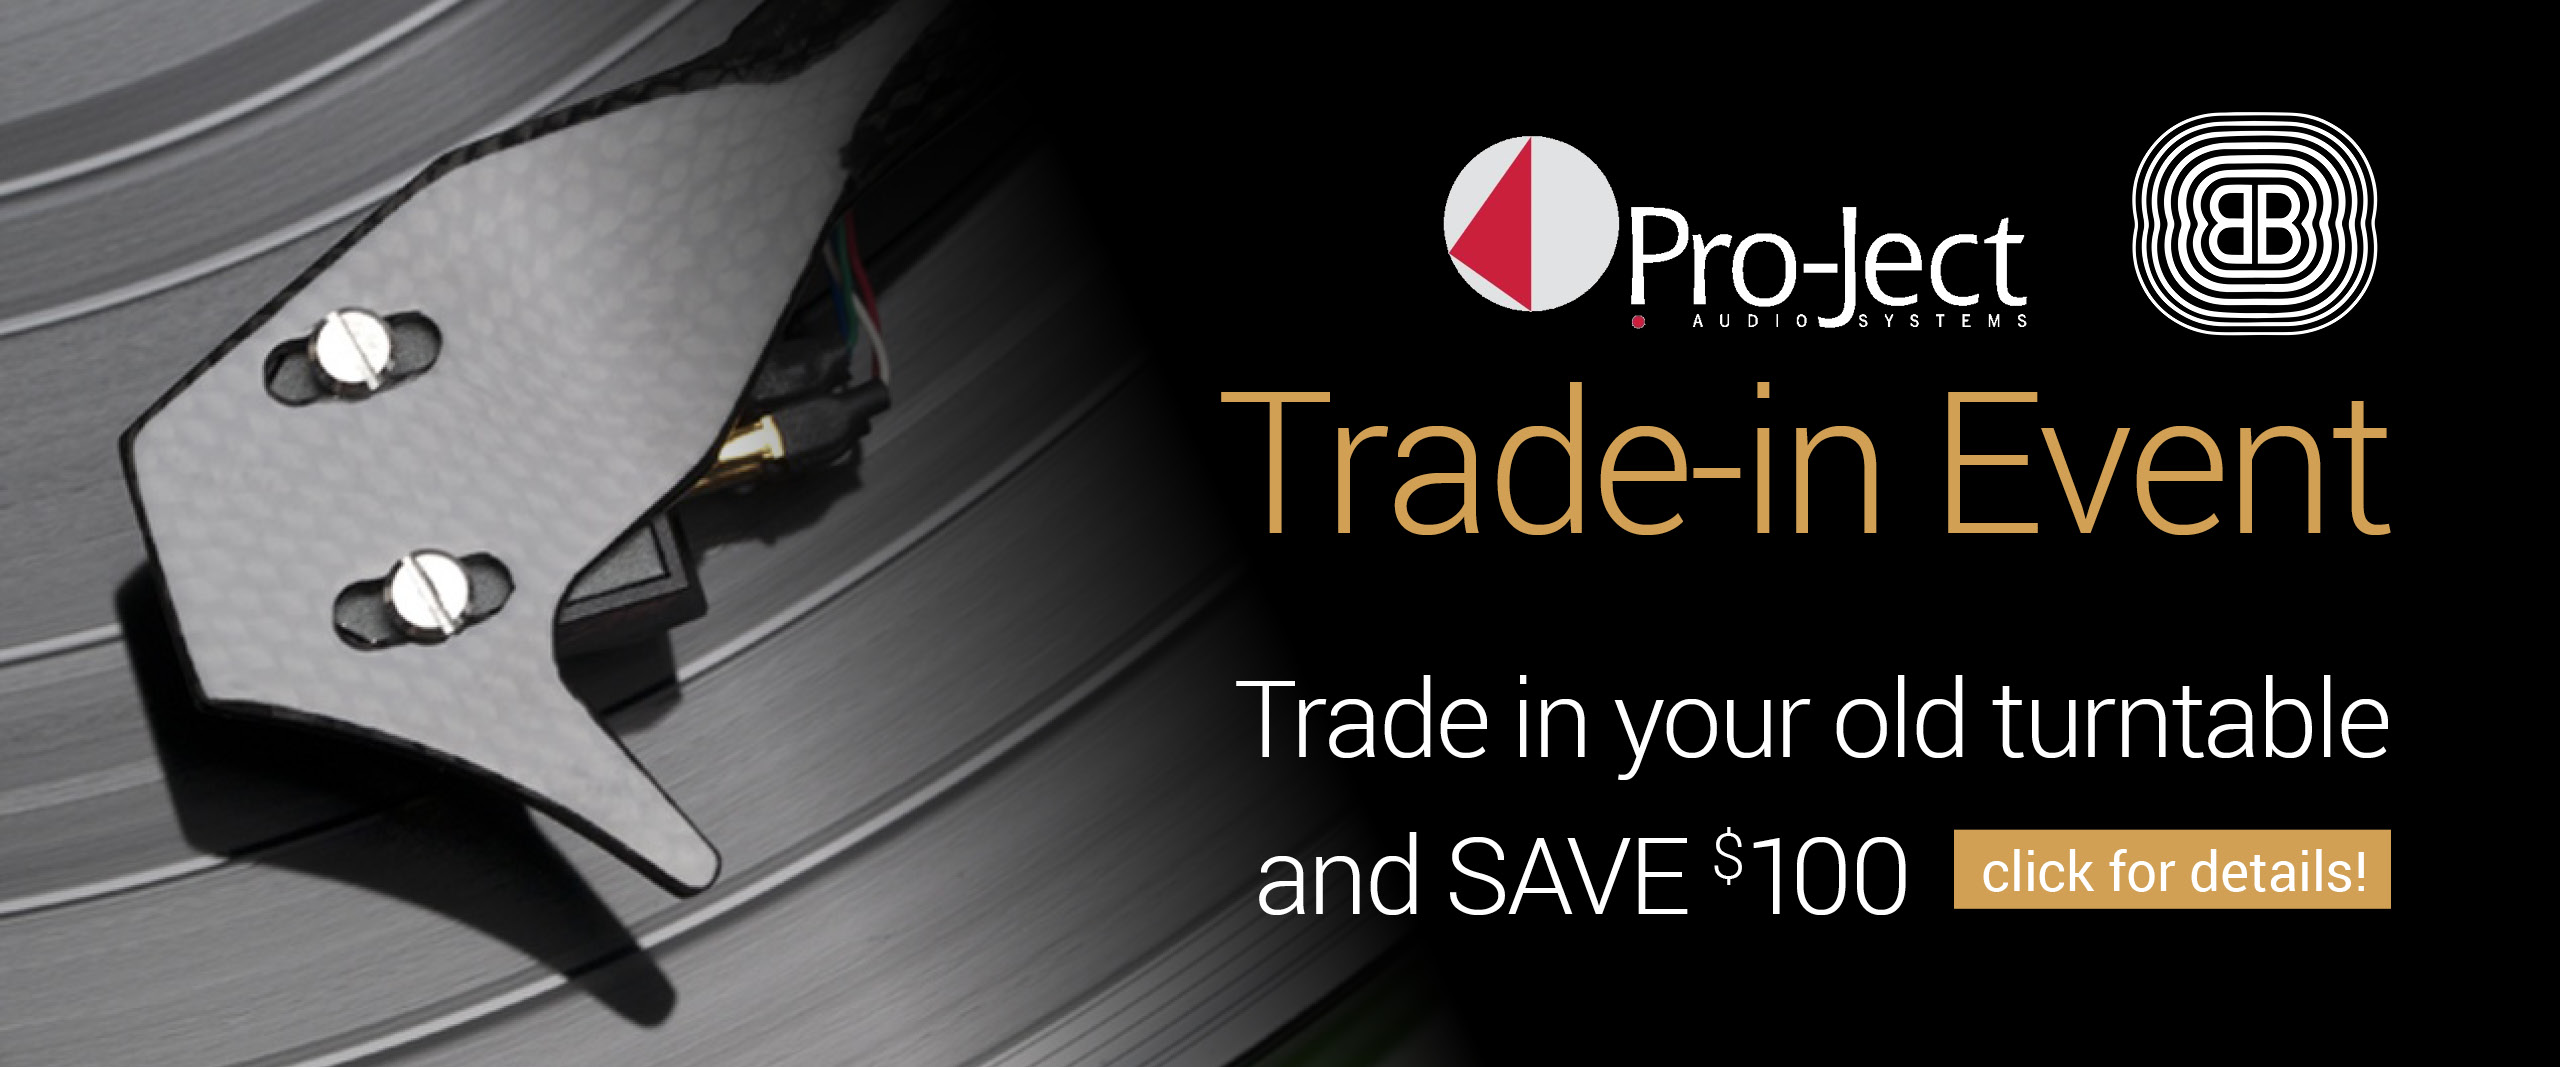 Pro-Ject Trade-In